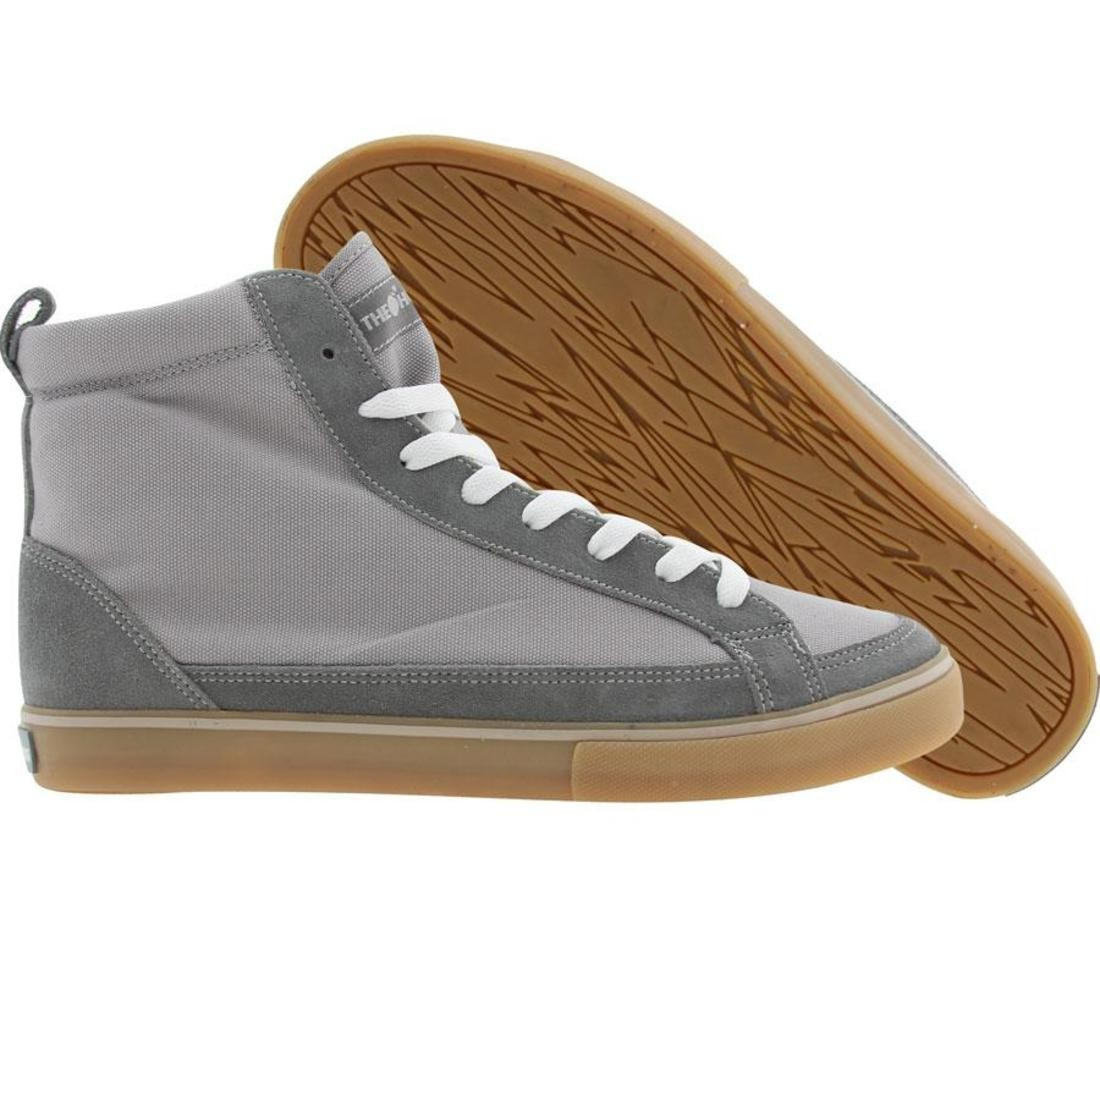 ハイ スニーカー 【 THE HUNDREDS WAYNE HIGH TOP GREY 】 メンズ